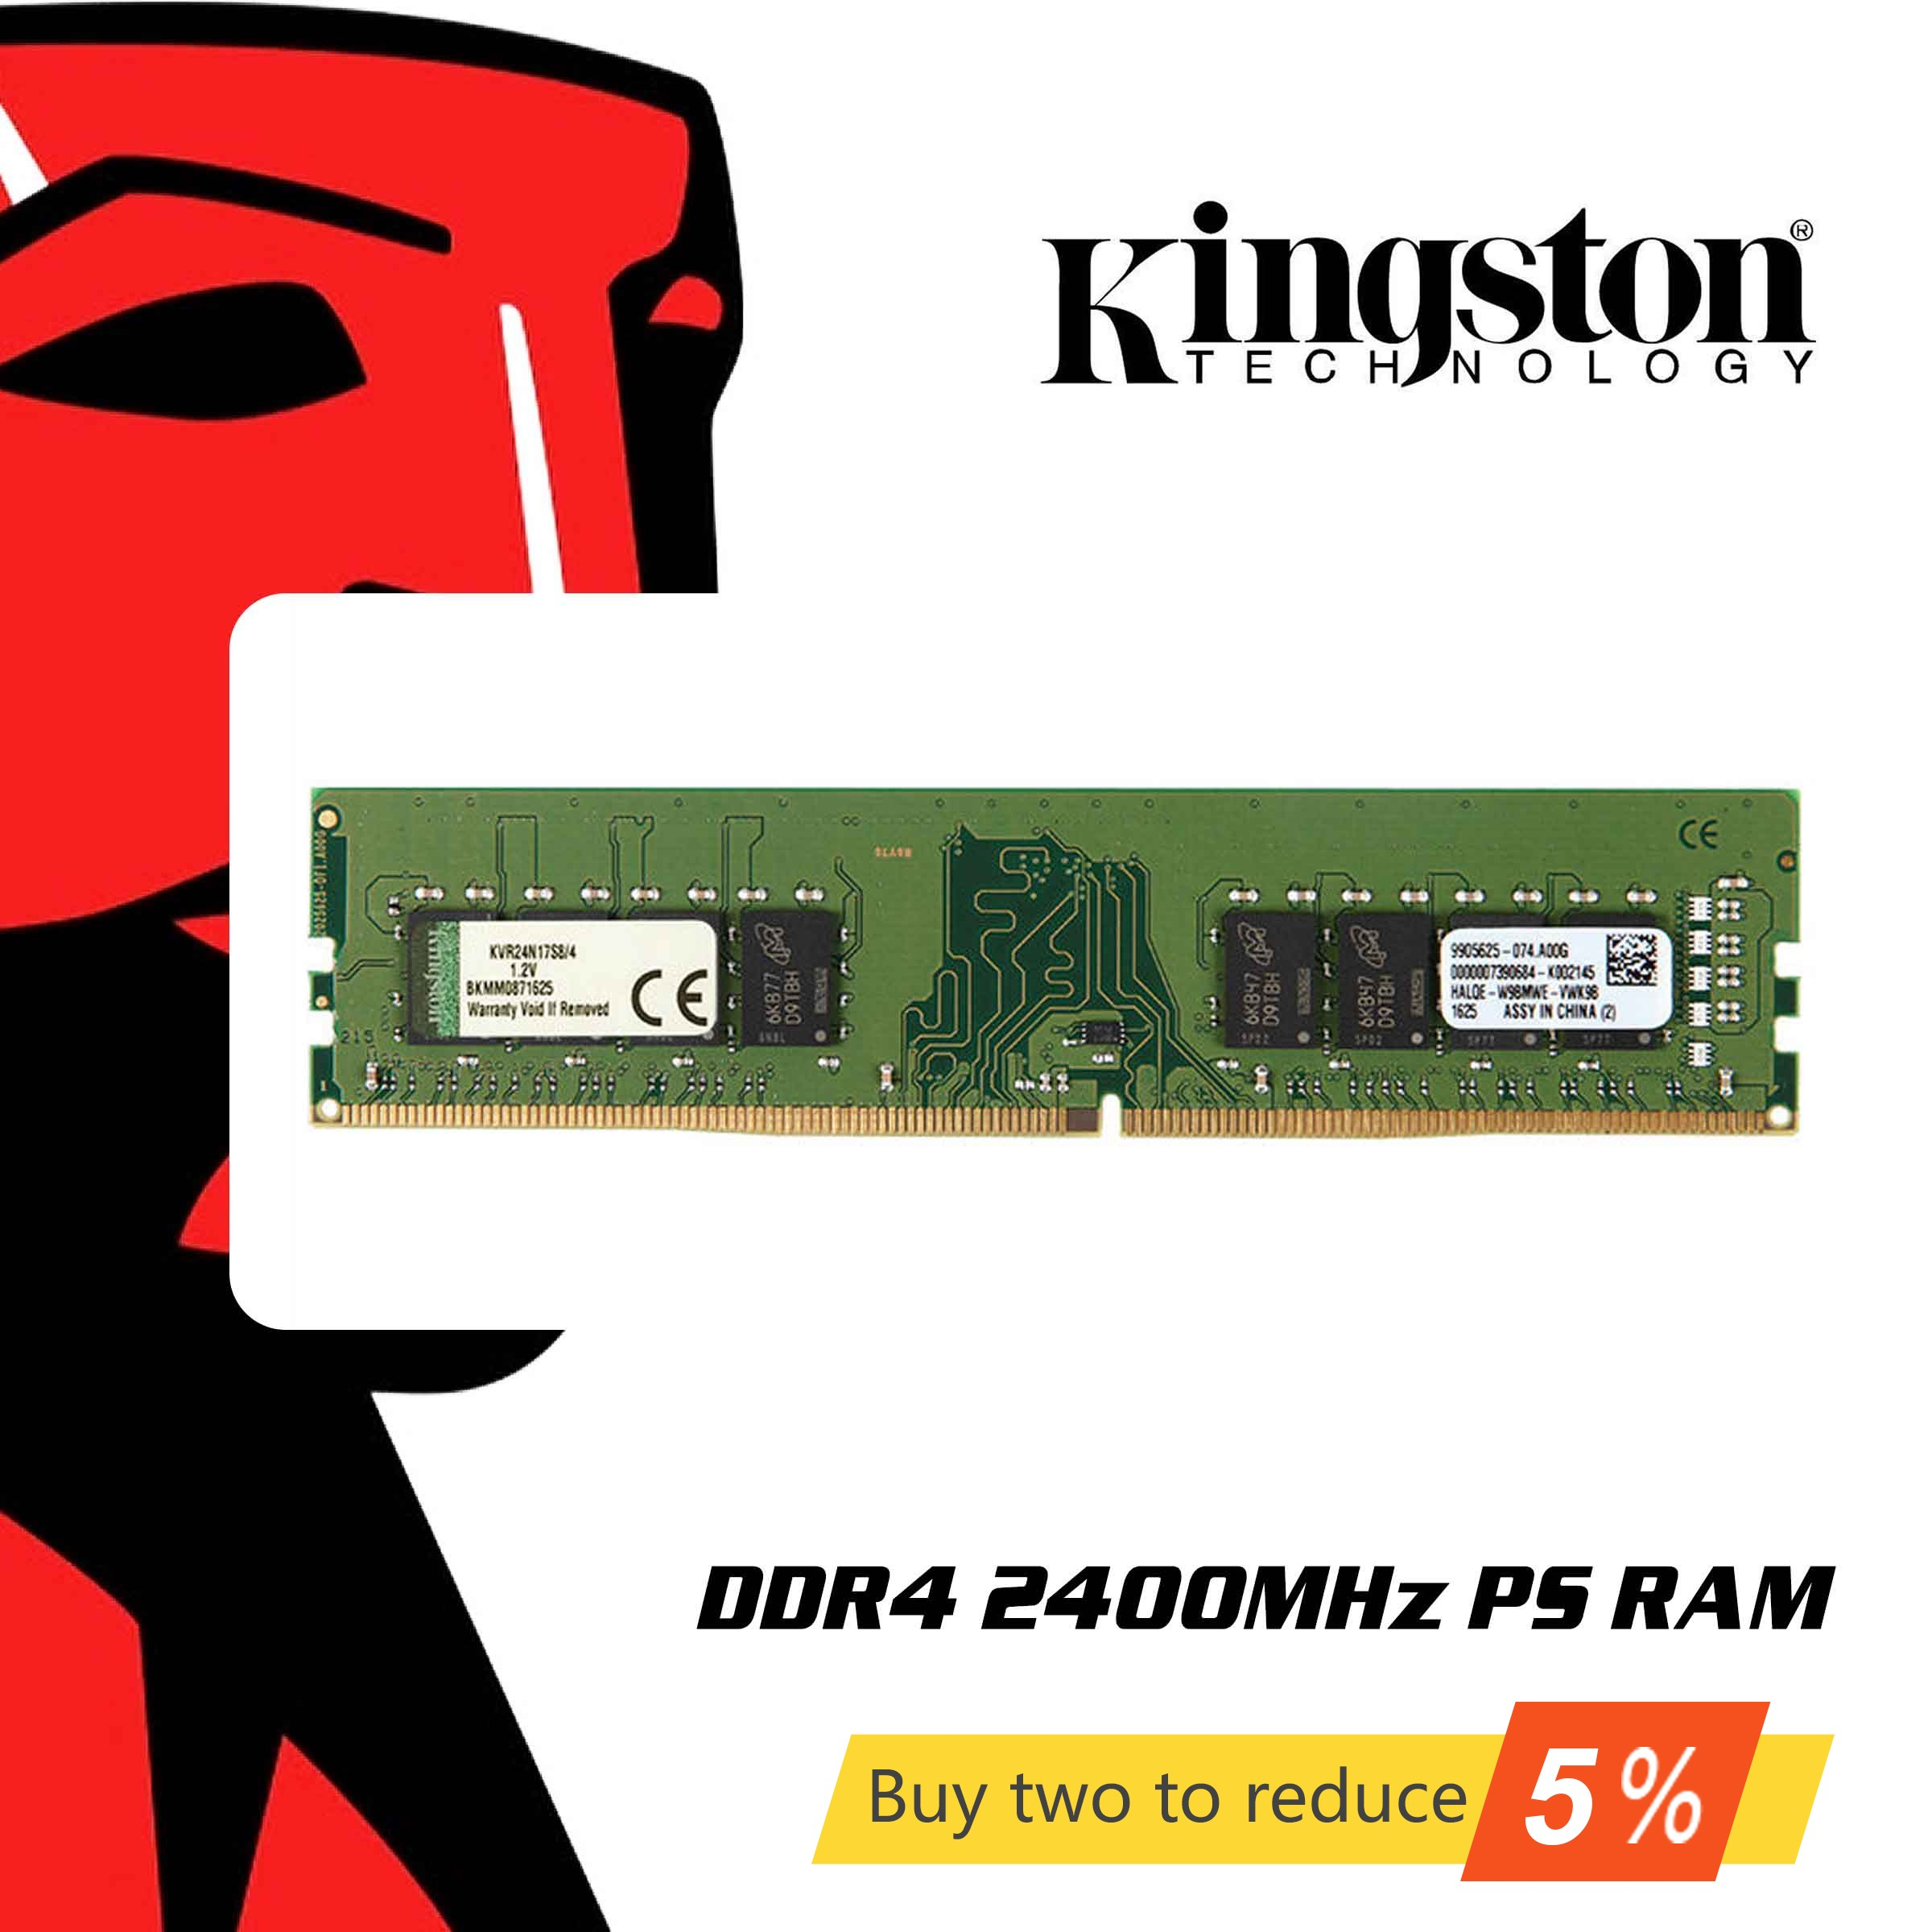 Original Kingston <font><b>DDR4</b></font> <font><b>RAM</b></font> Speicher 8GB 4GB 16GB 2400Mhz Memoria DDR 4 8 16 Gigabyte Gigs sticks für Desktop-PC Notebook <font><b>Laptop</b></font> image